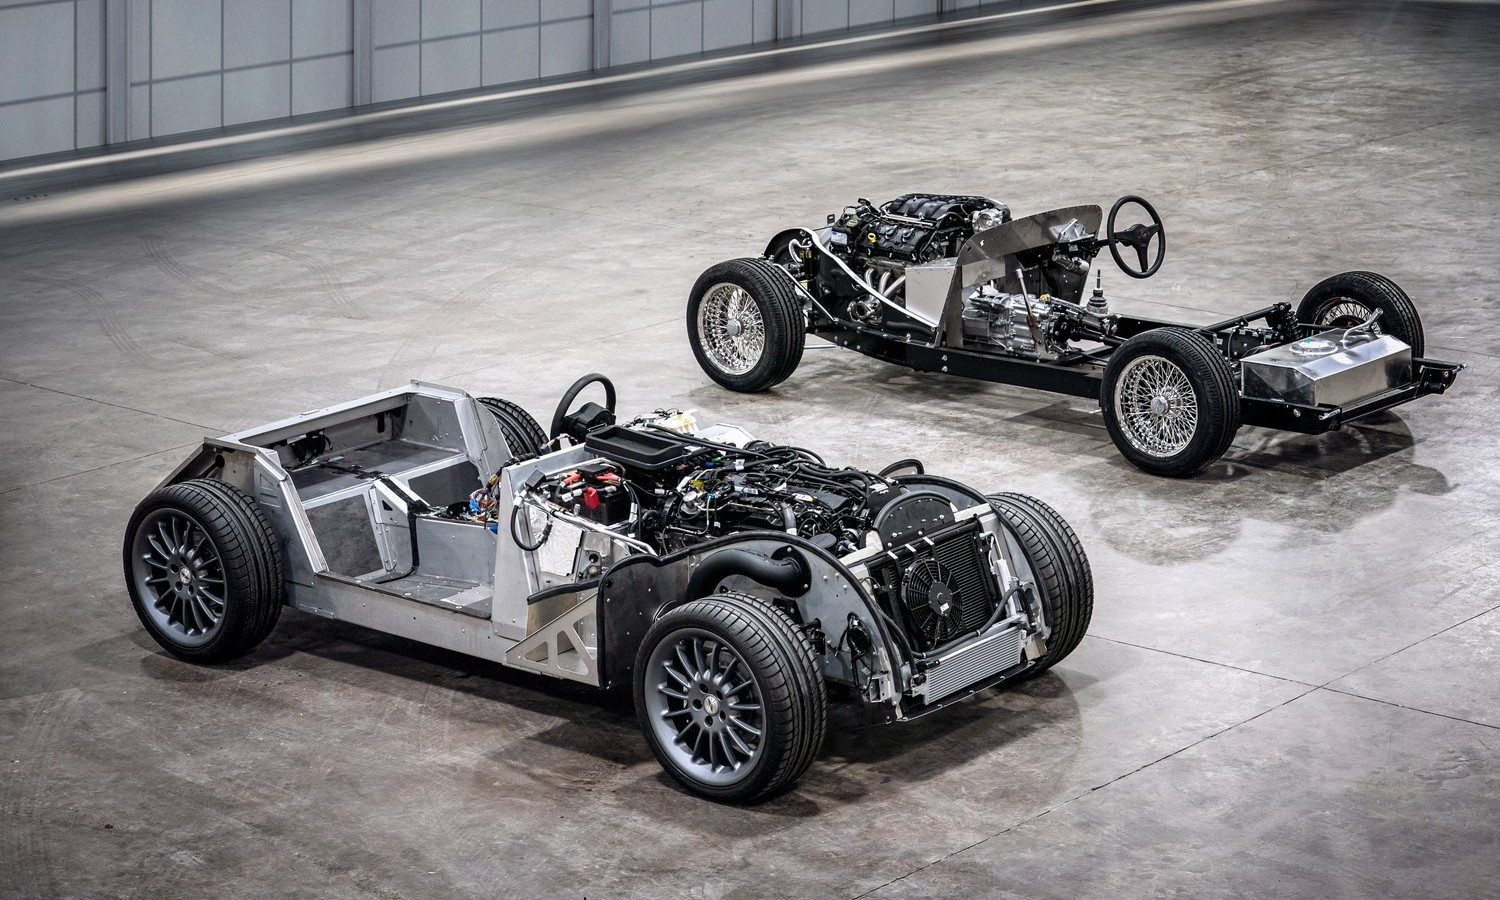 Morgan CX-Generation platform and traditional steel chassis landscape, 2019